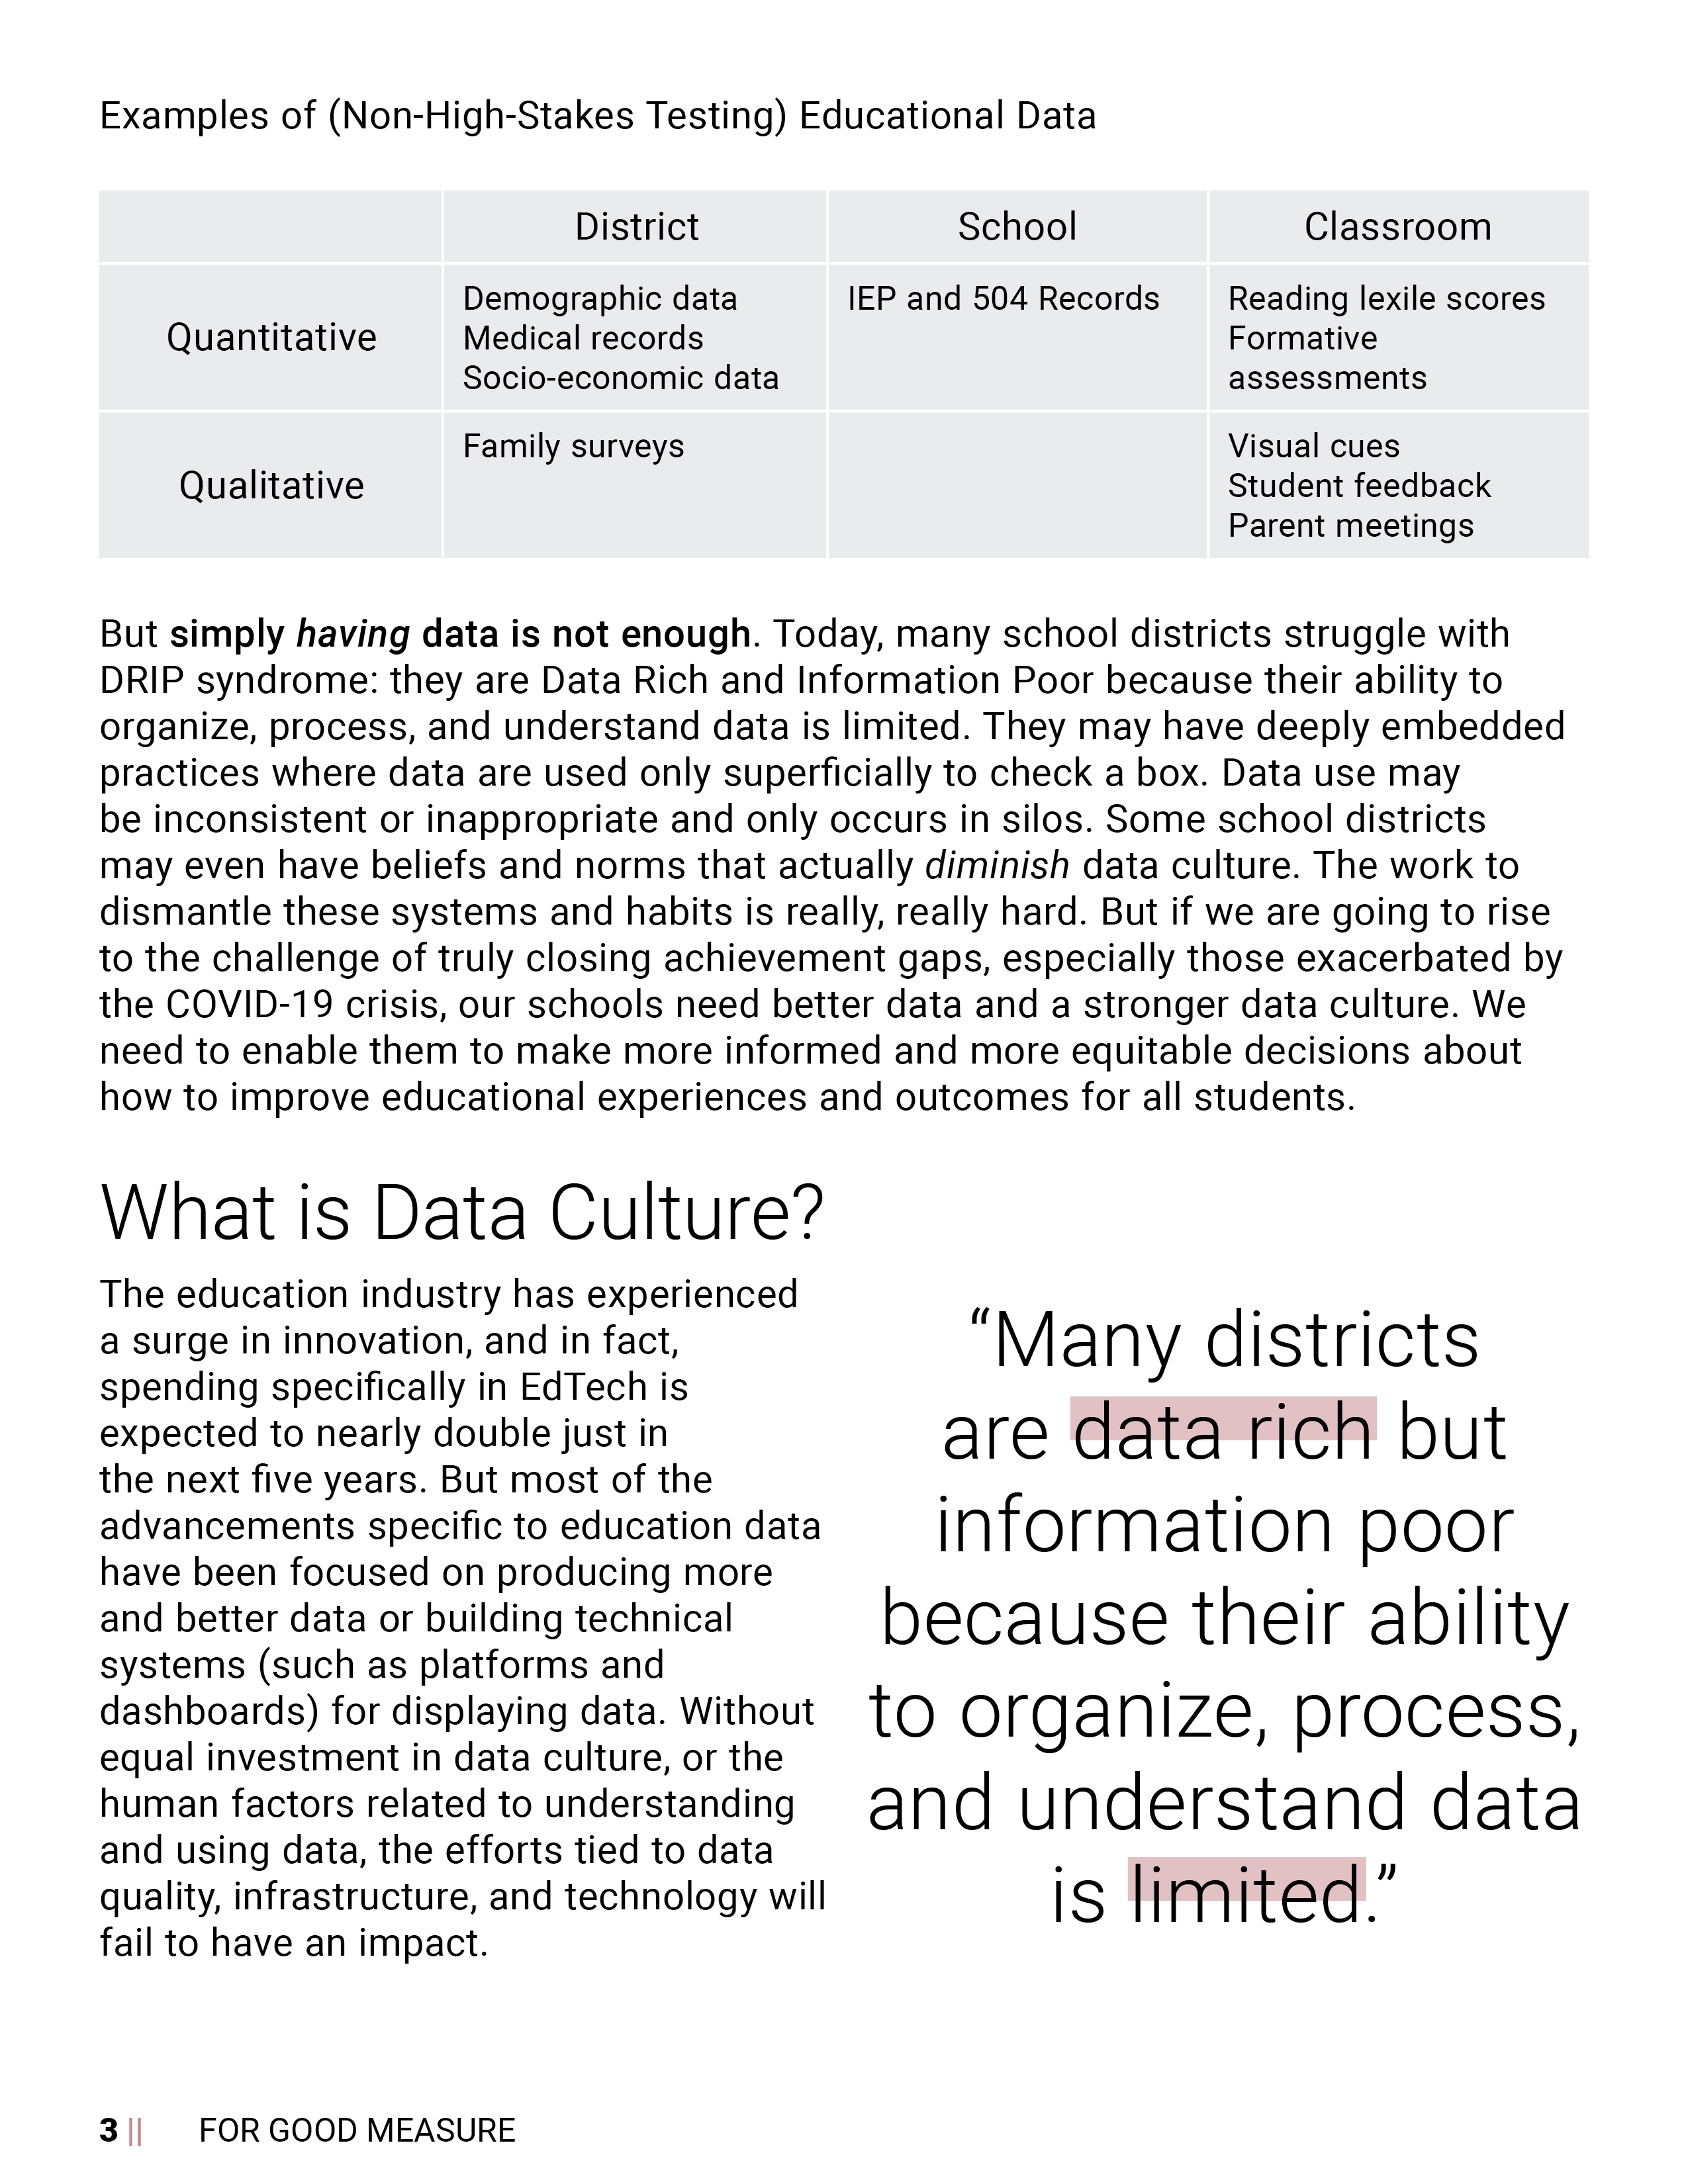 For Good Measure - Data Culture Guide page 3